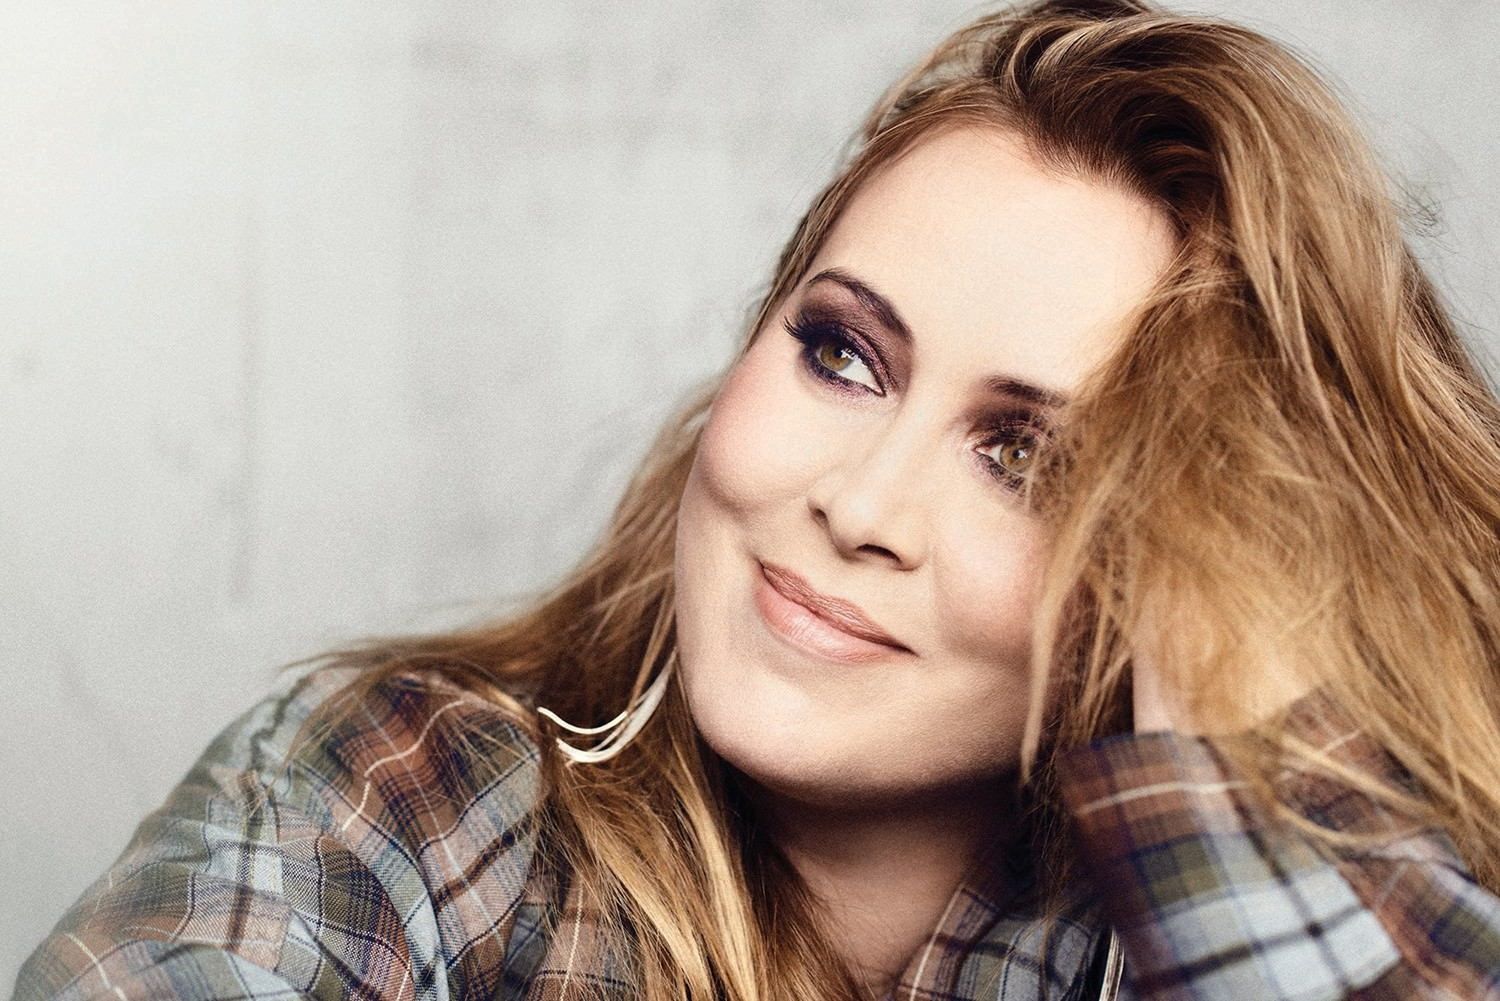 Eurovision The Netherlands Team Anouk Wins The Voice Of Holland